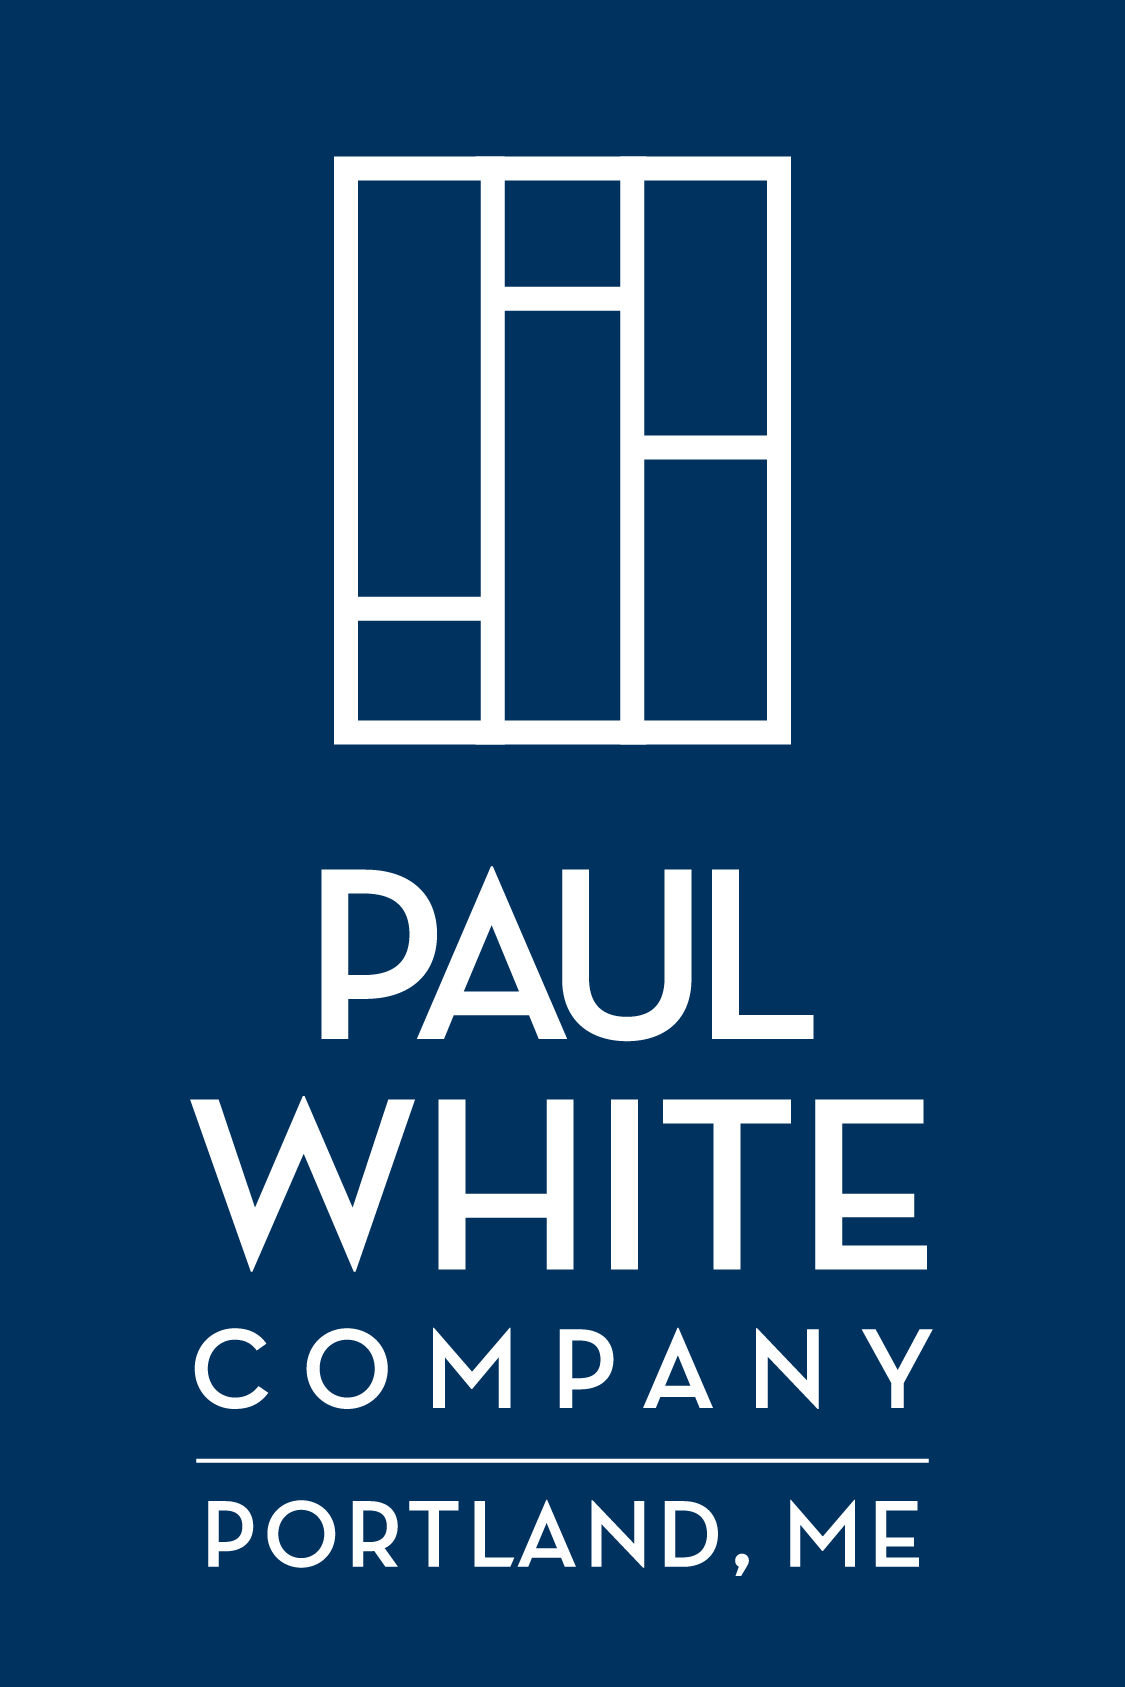 2018 Paul White Company Logo-01.png